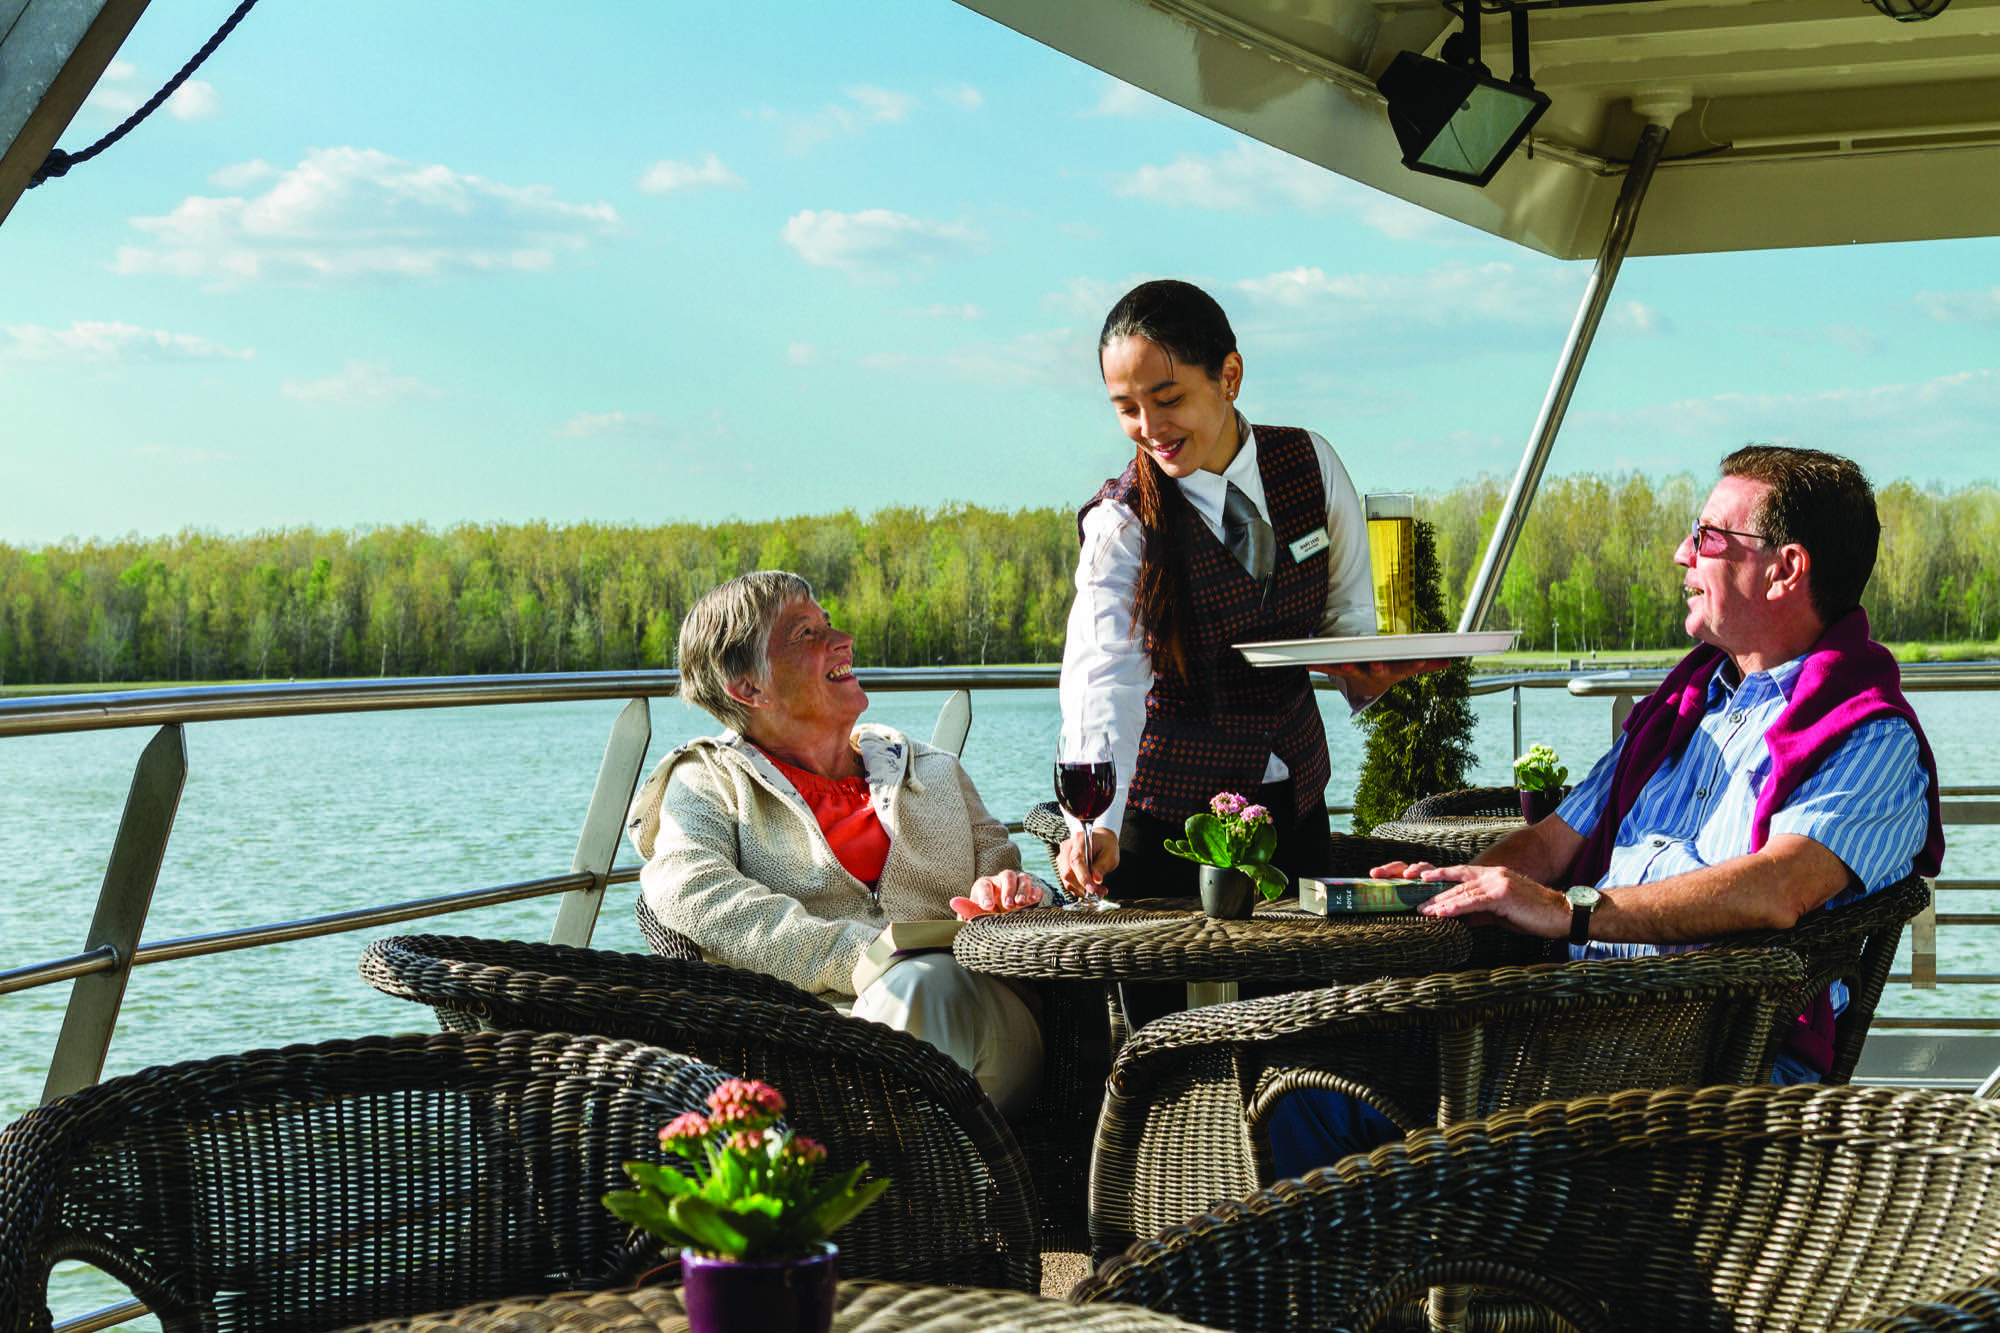 The River cruise line Serenity Lido Bar Serenity551 R PB.jpg